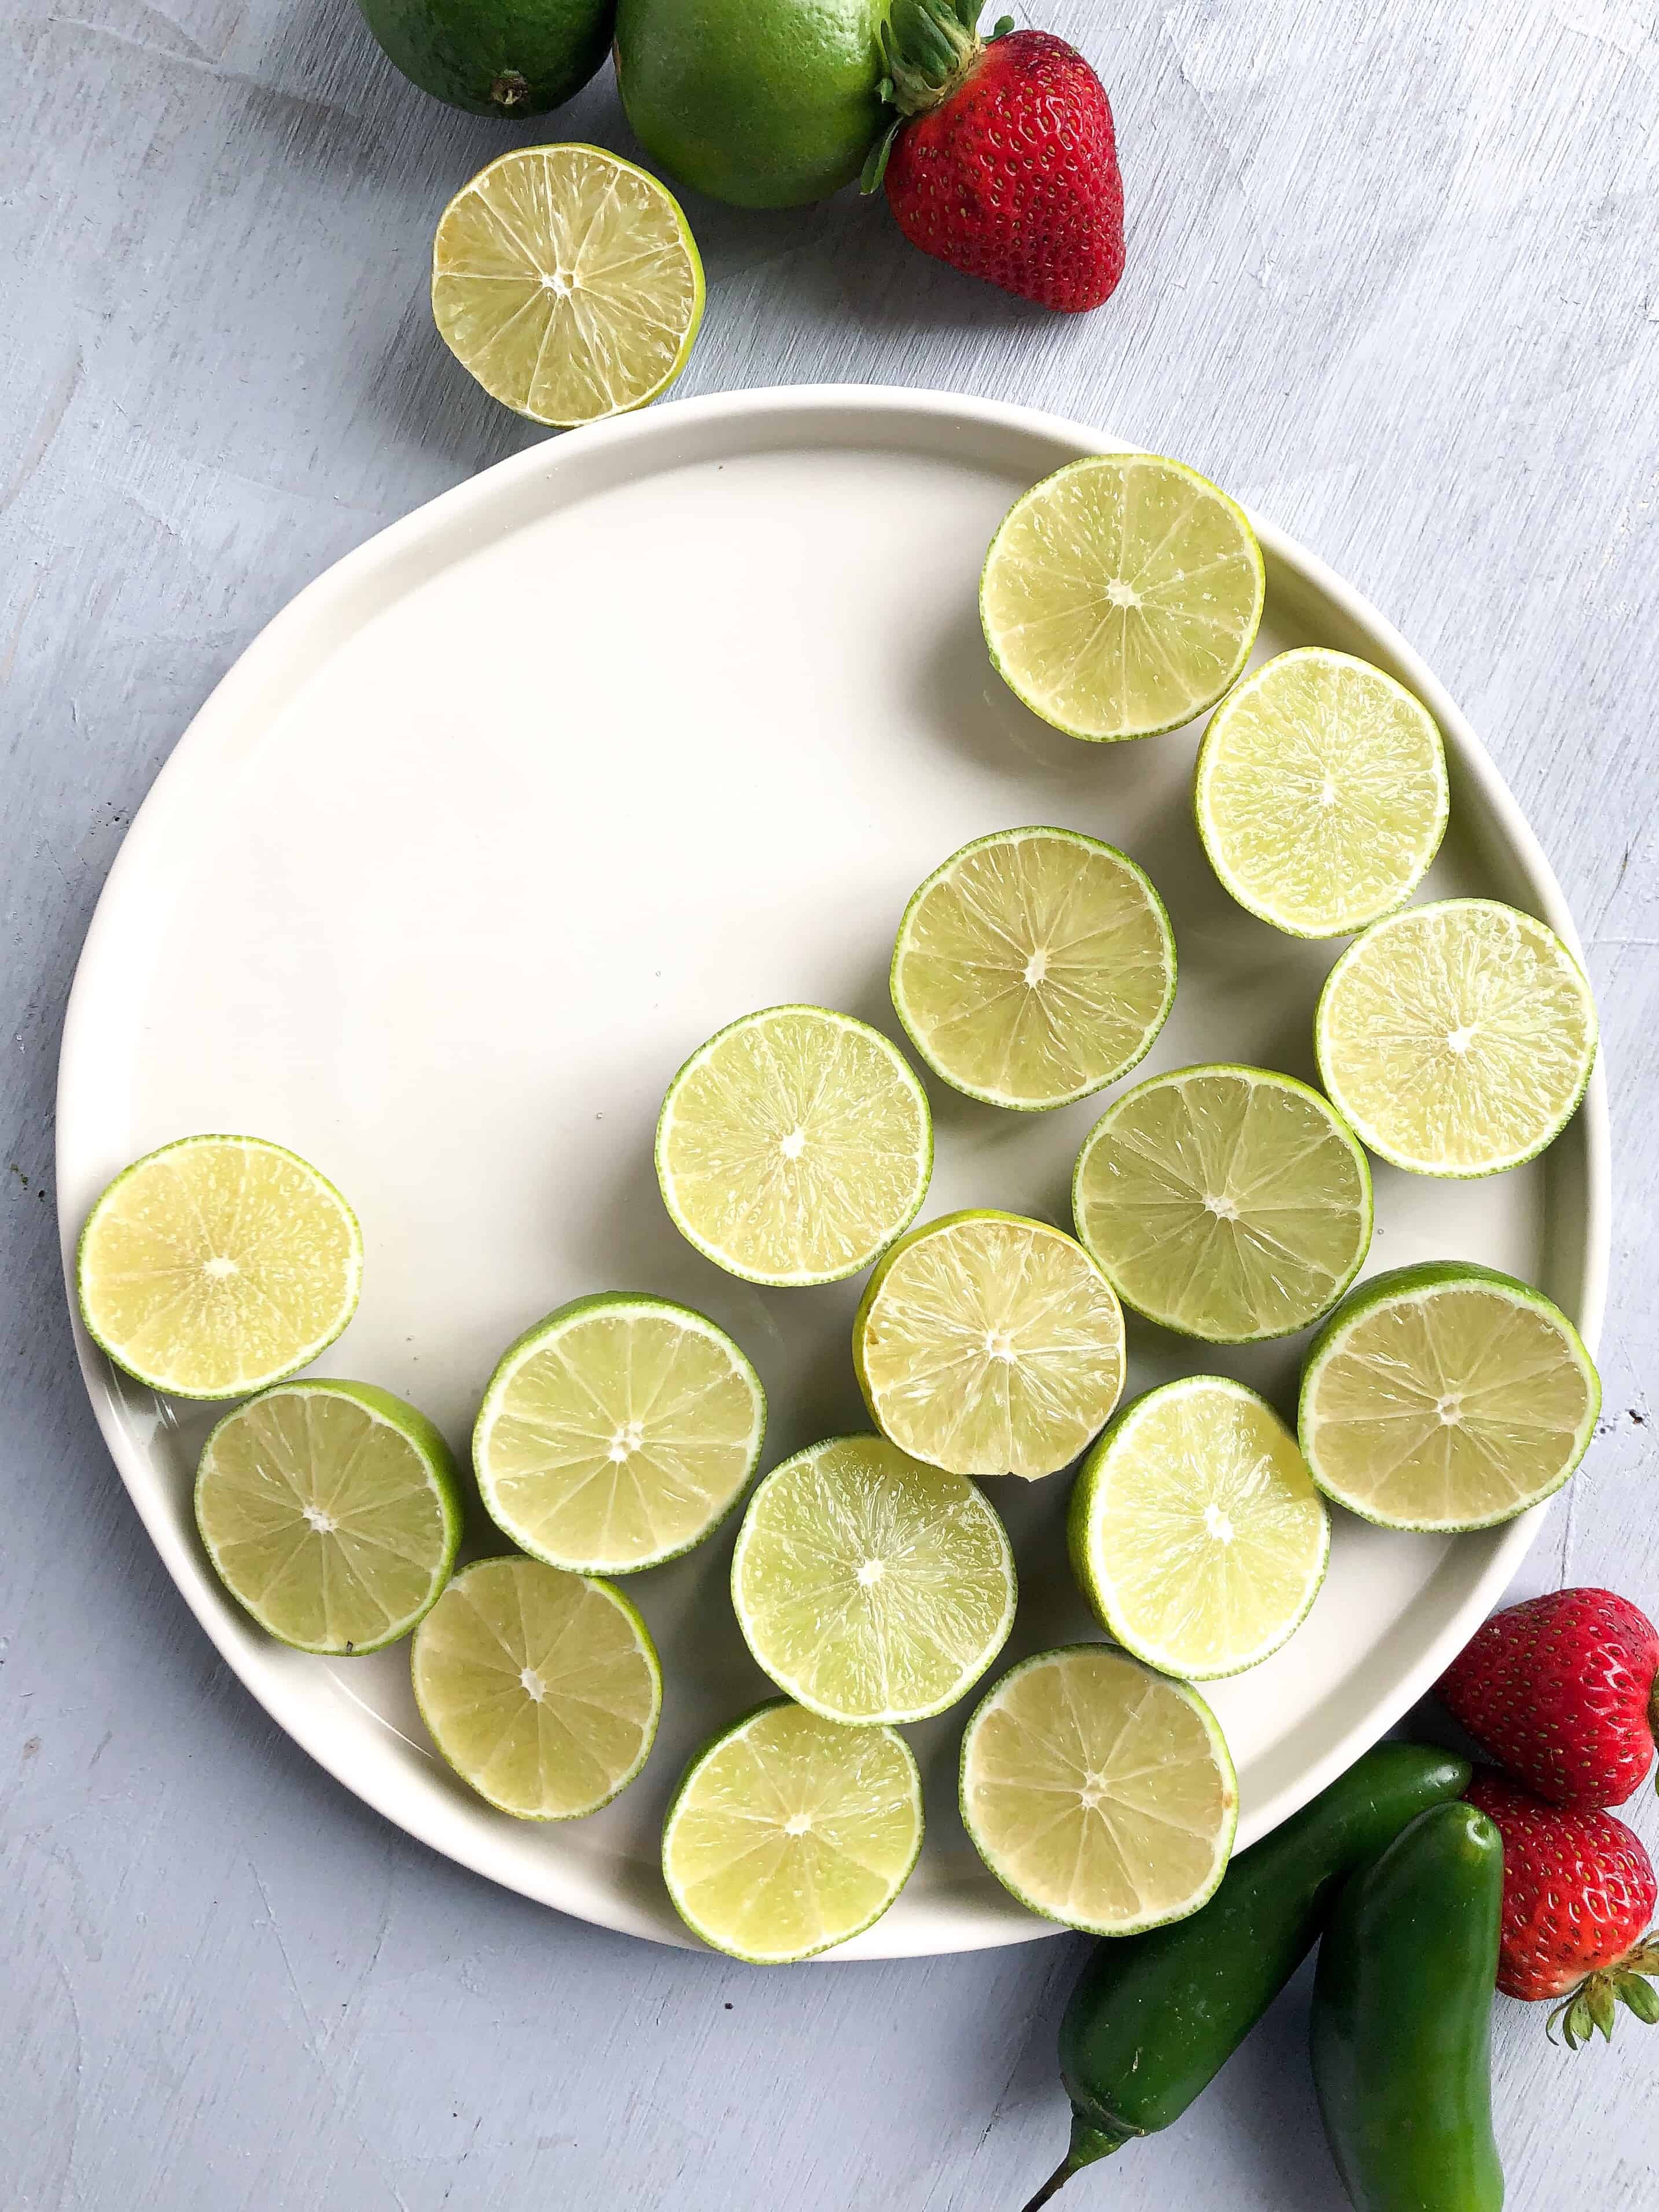 A plate of limes cut in half in a crescent shape